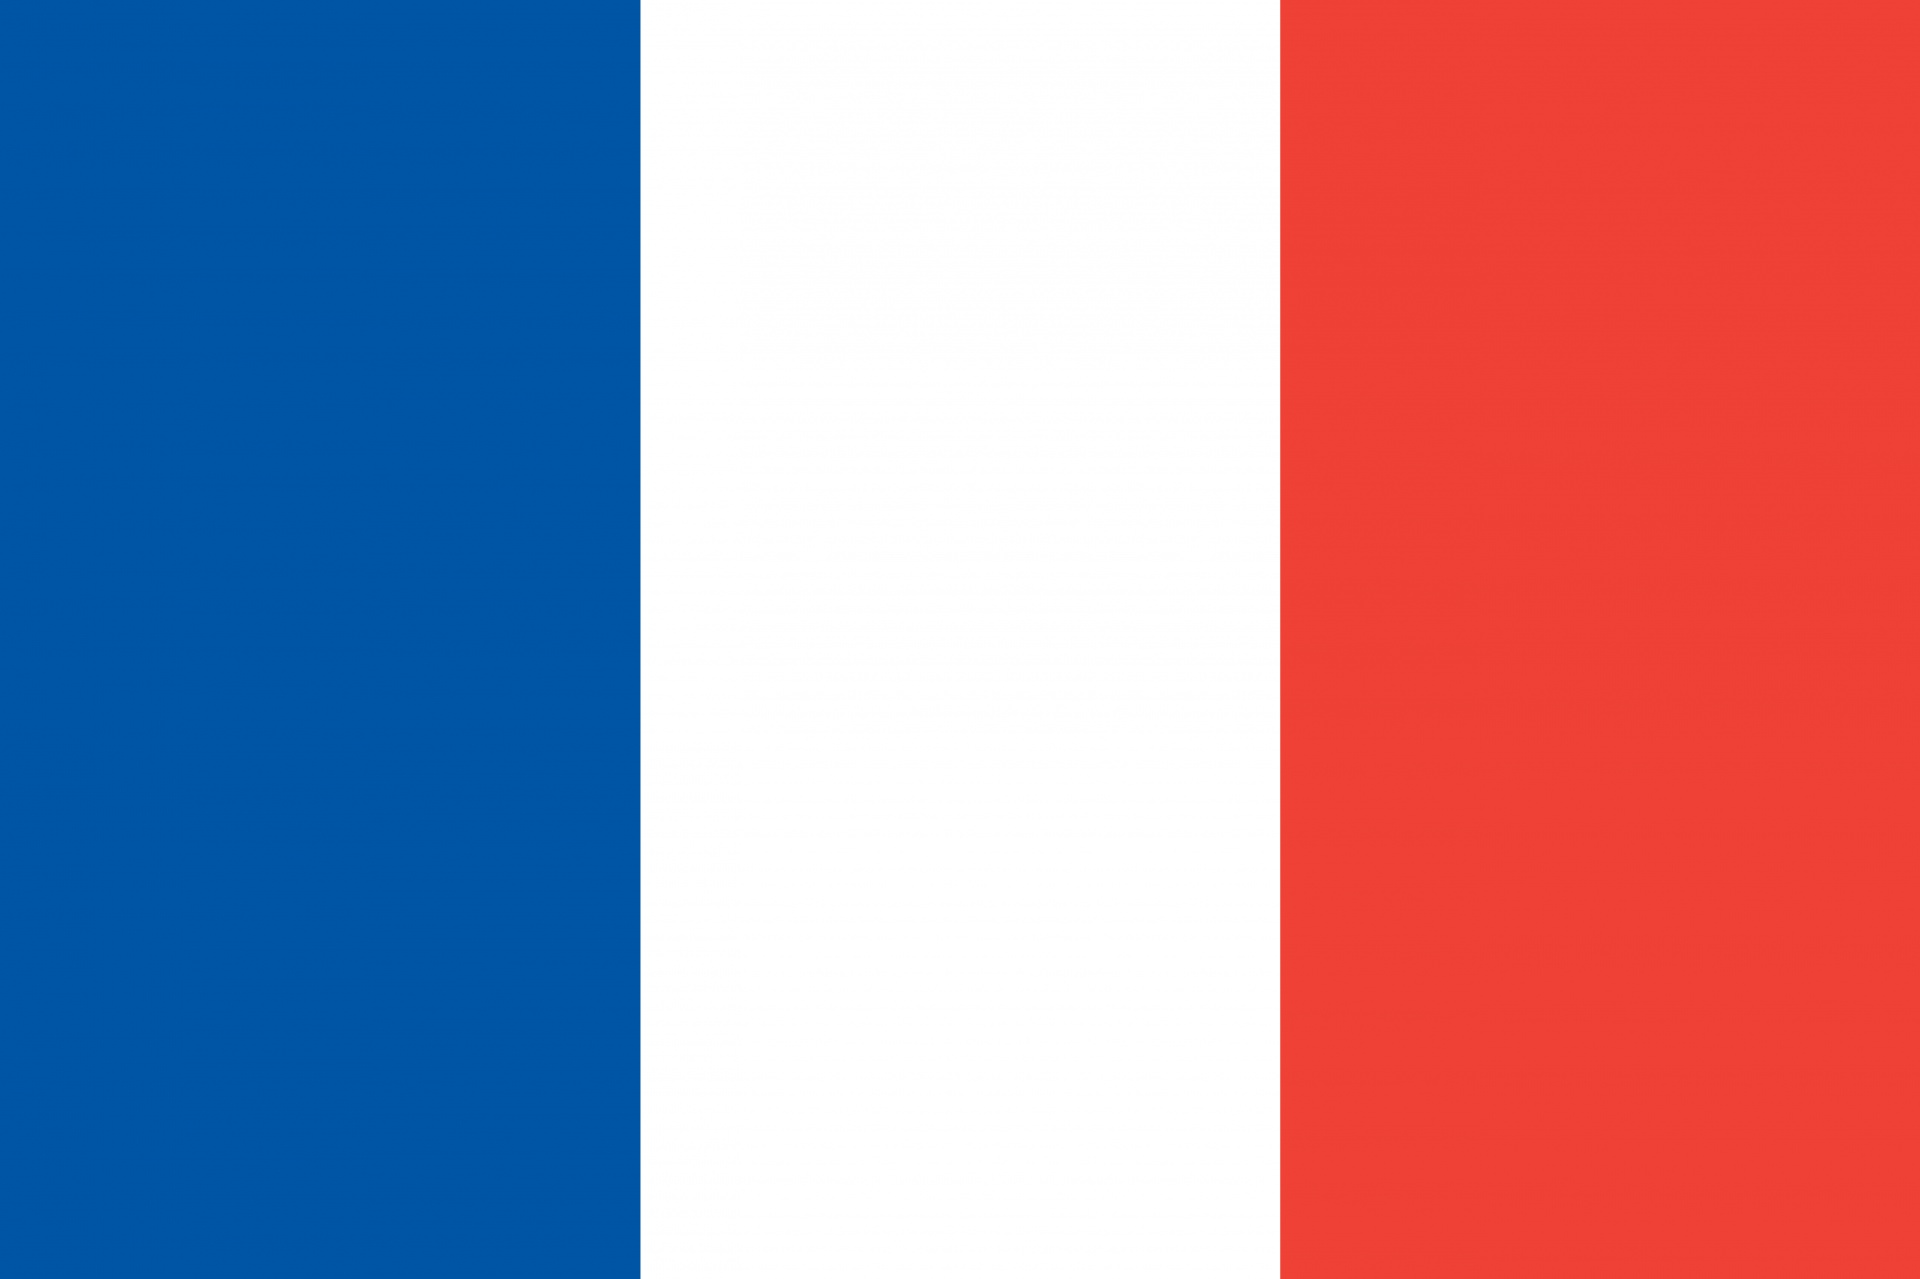 flag-of-france-1447582035OLJ